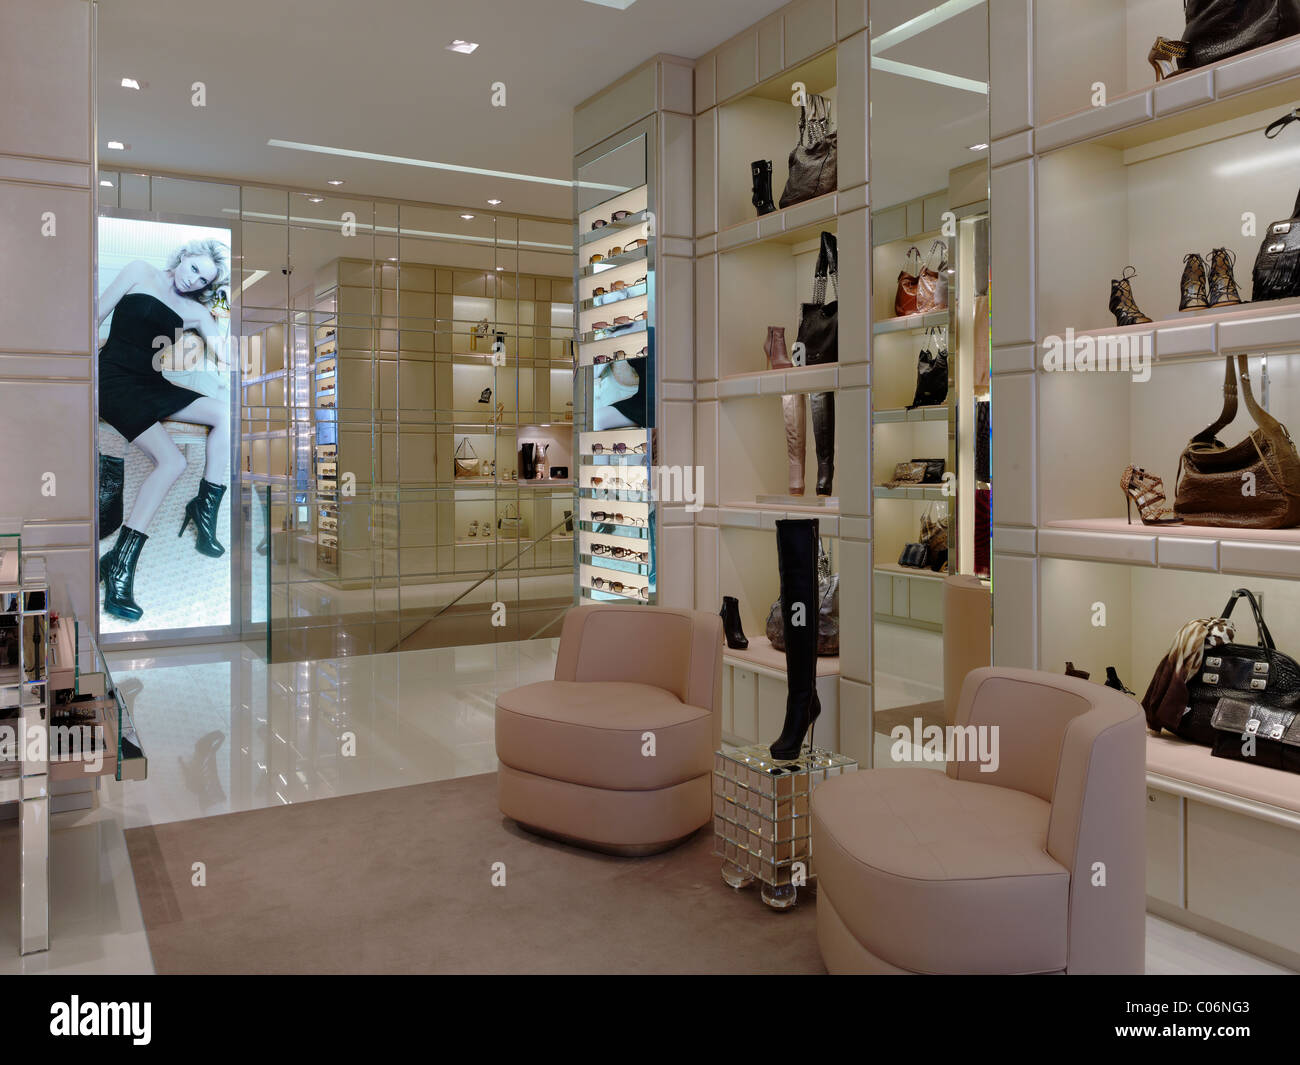 6658316a749 Store Display Of Jimmy Choo Shoes Stock Photos   Store Display Of ...